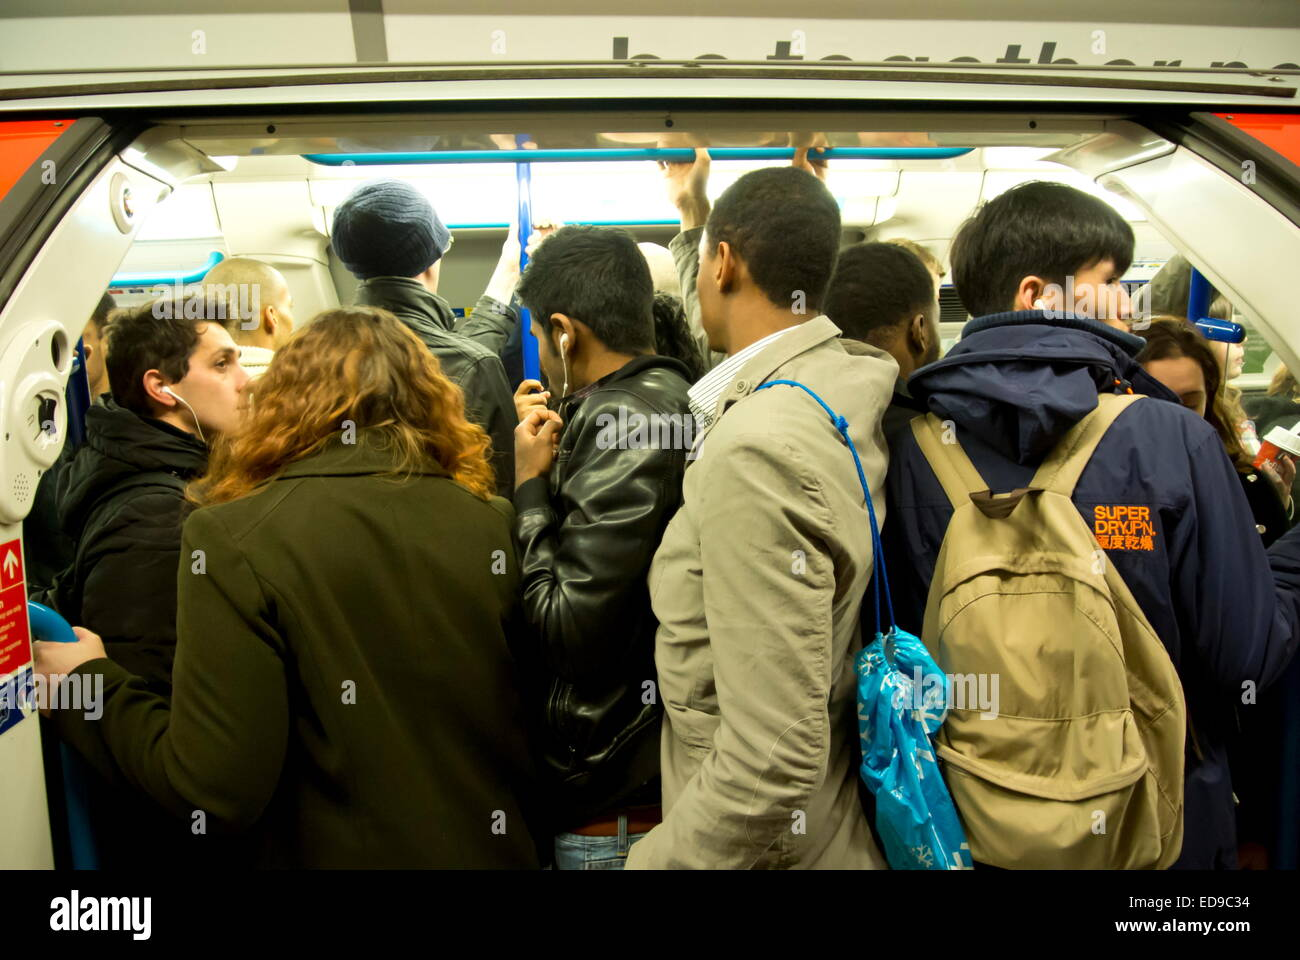 Crowds of commuters board a London Underground train at Oxford Circus railway station on the Victoria Line, London, - Stock Image